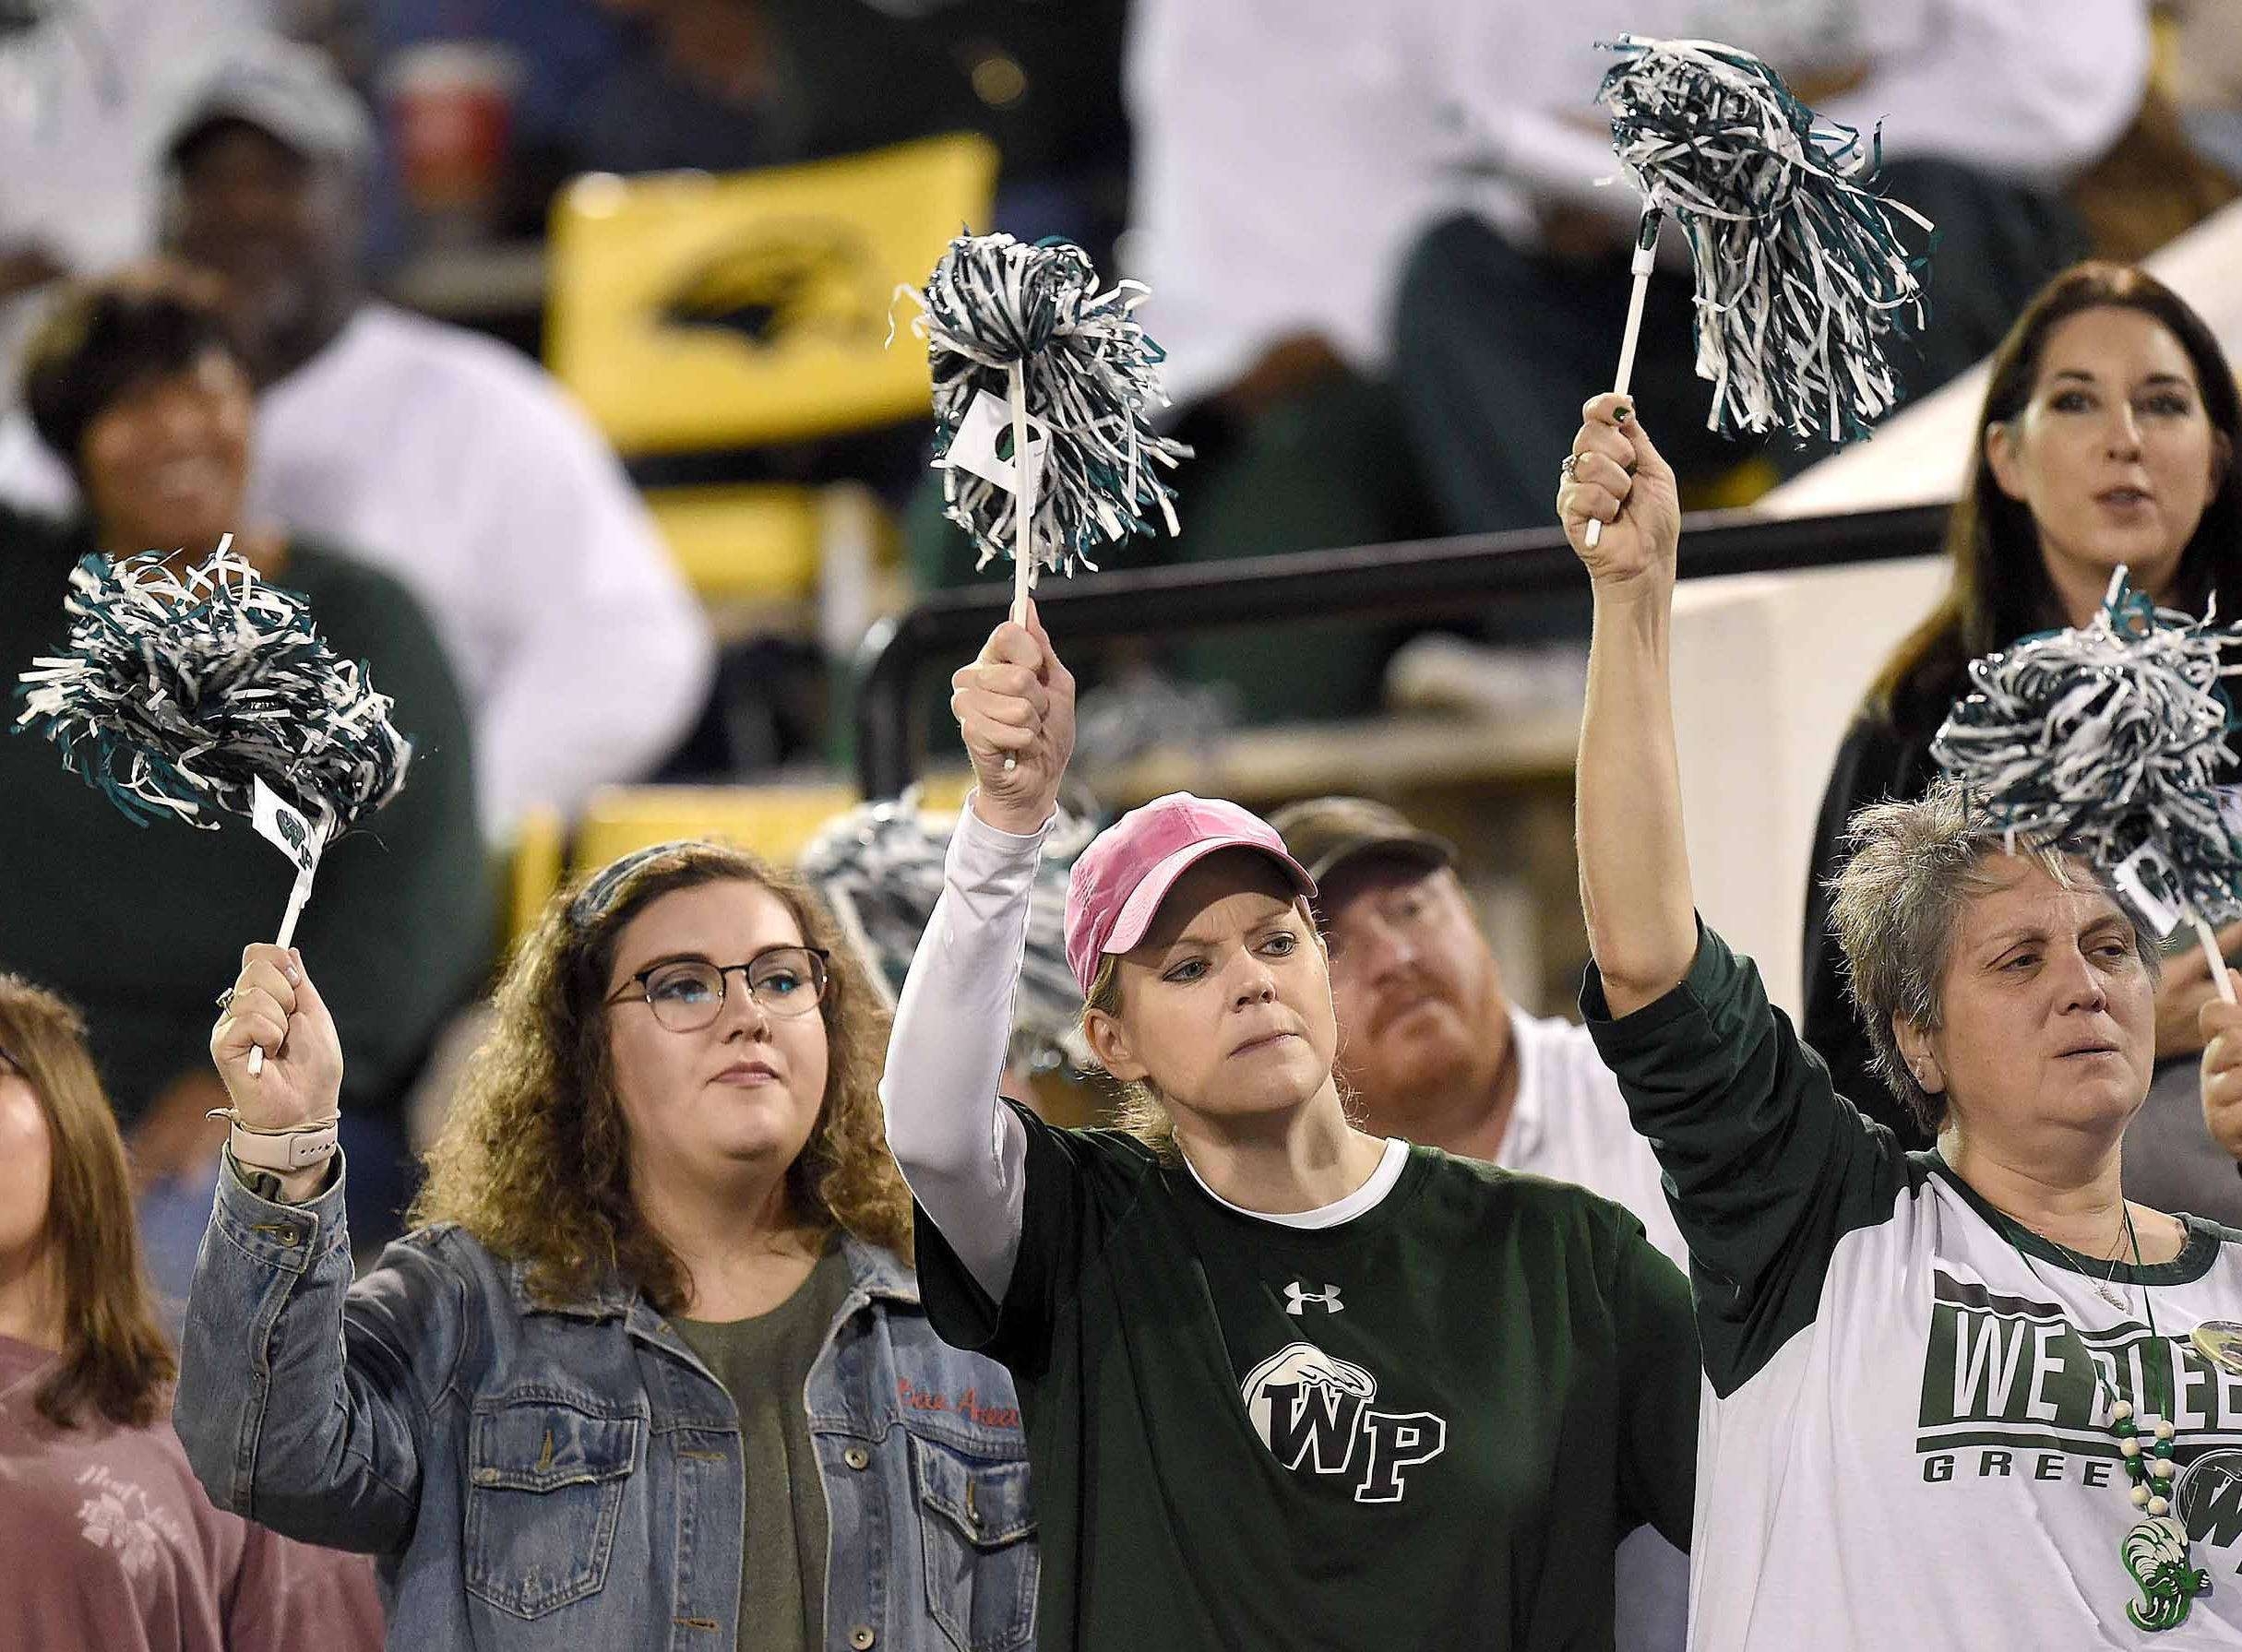 West Point fans cheer for the Green Wave on Saturday, December 1, 2018, in the MHSAA BlueCross BlueShield Gridiron Classic High School Football Championships in M.M. Roberts Stadium on the University of Southern Mississippi campus in Hattiesburg, Miss.